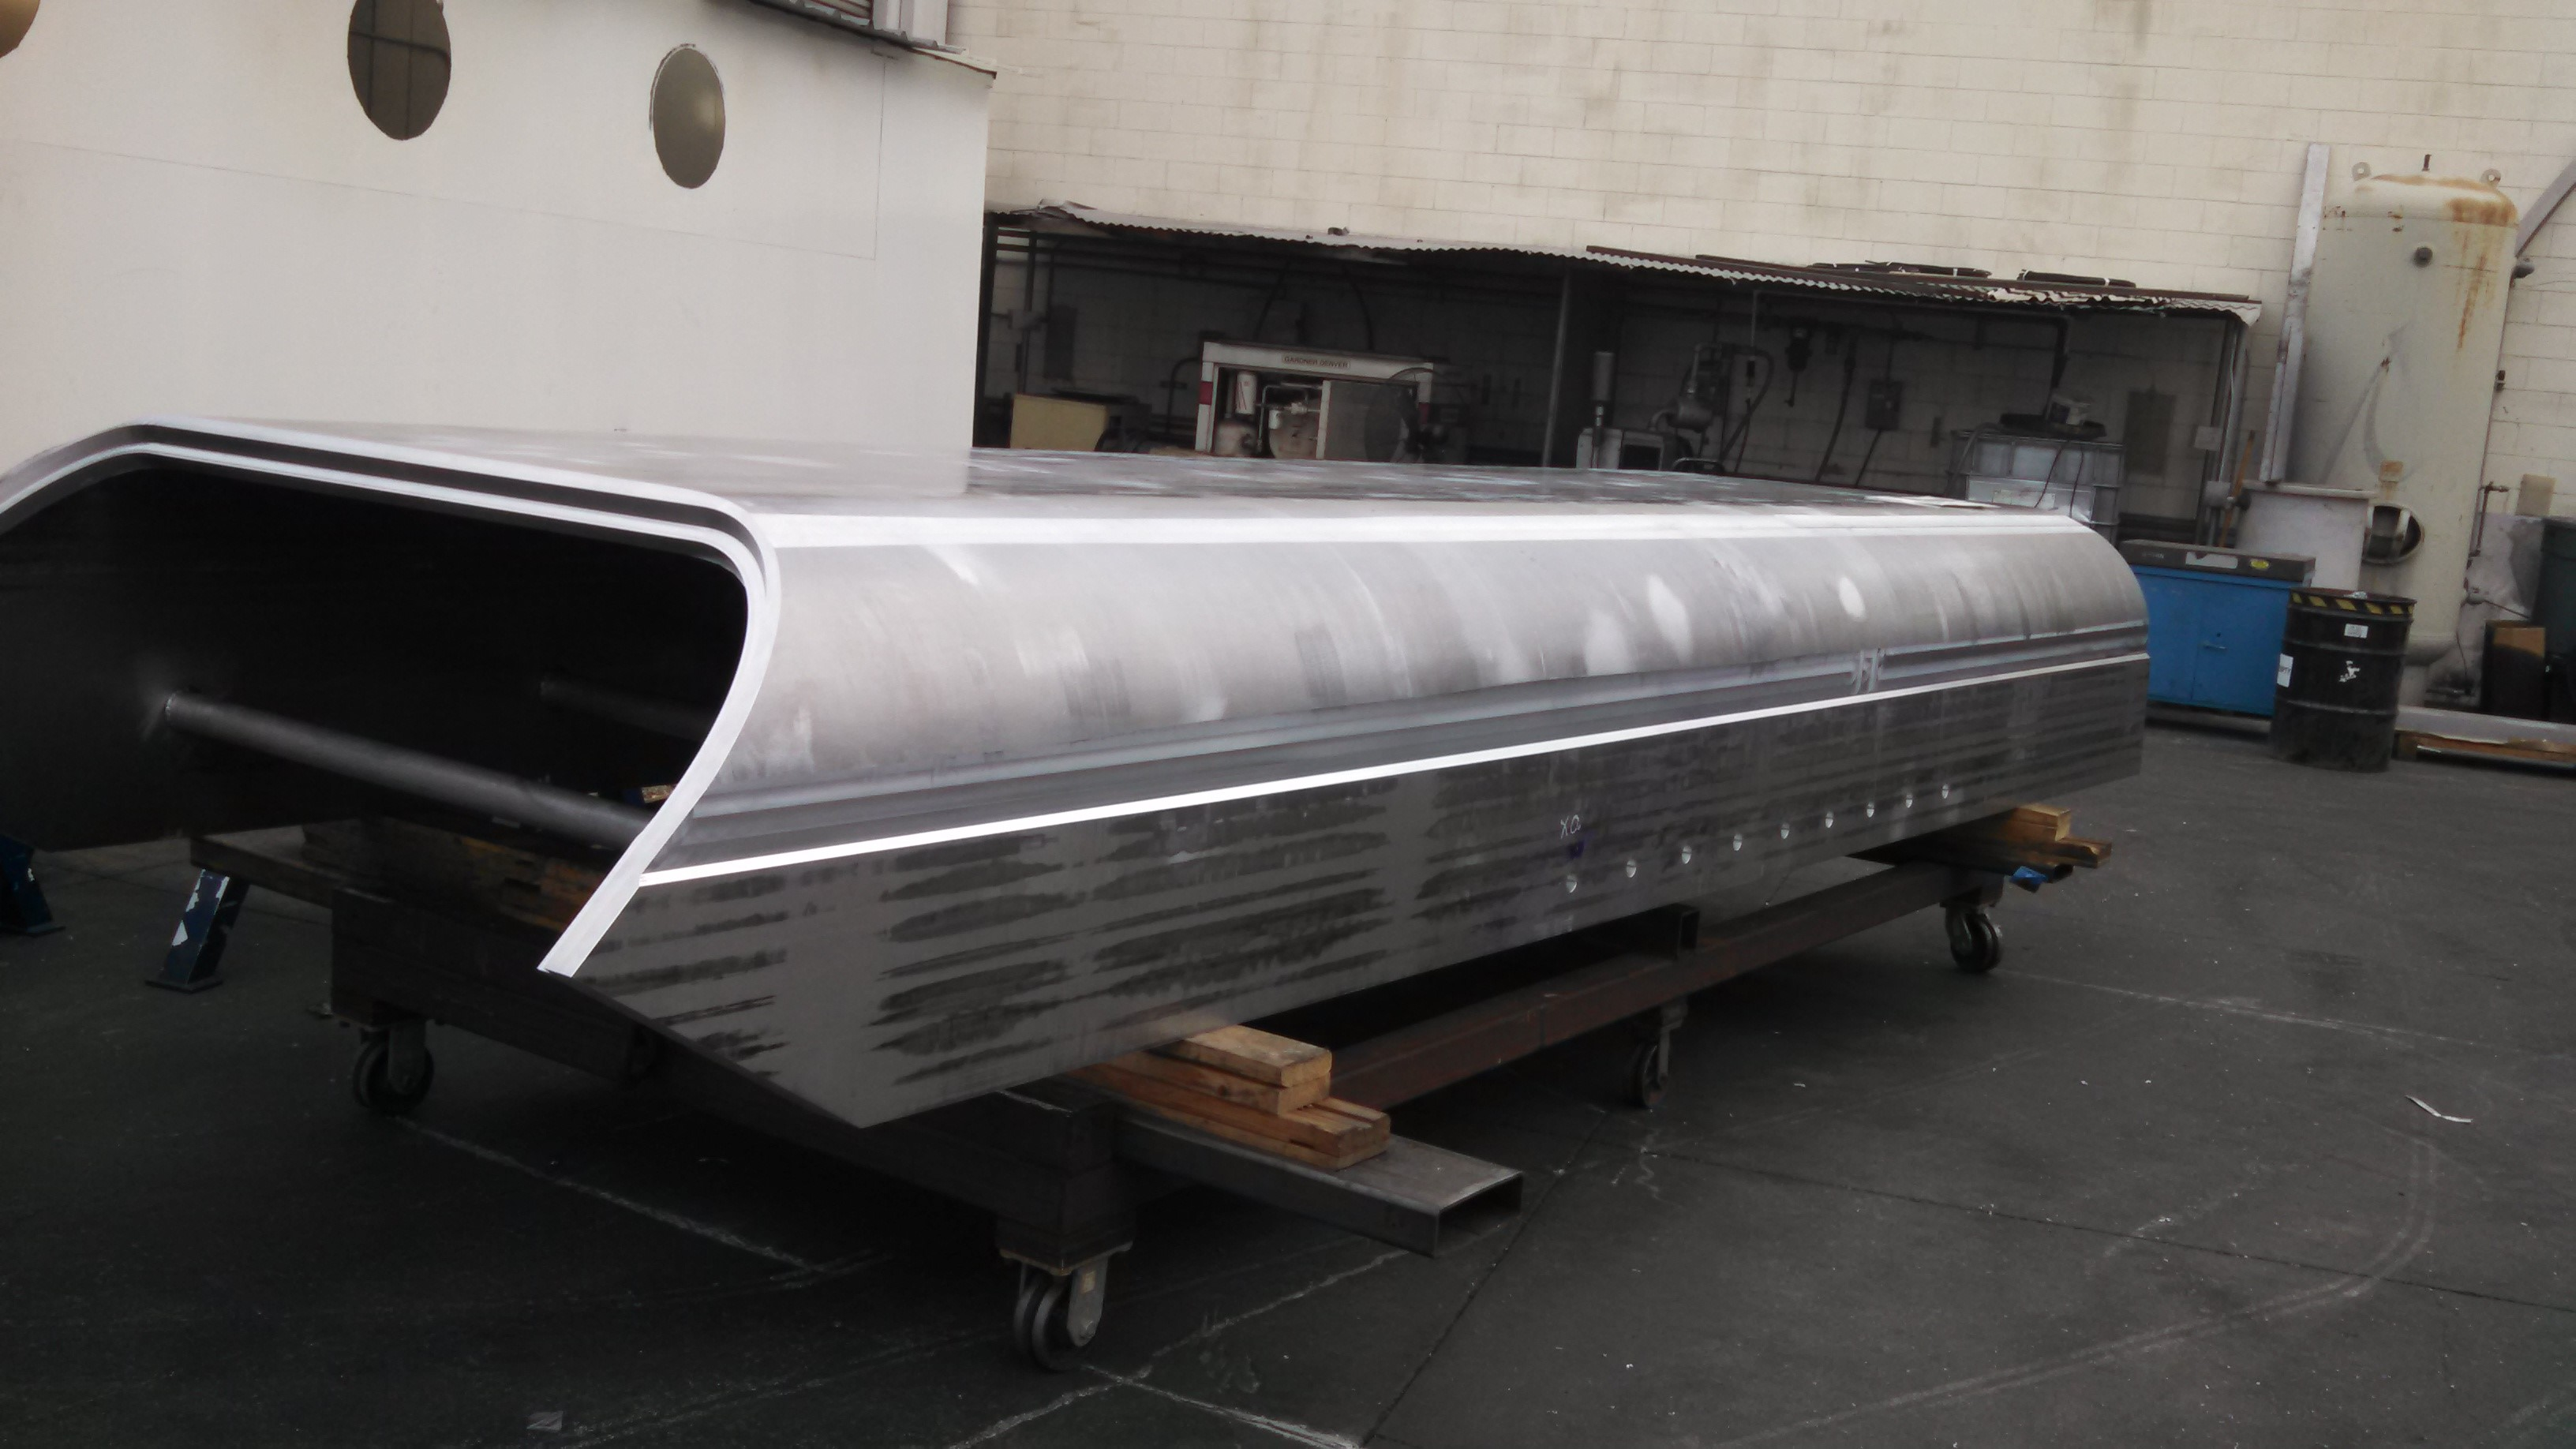 Finished formed and machined hull